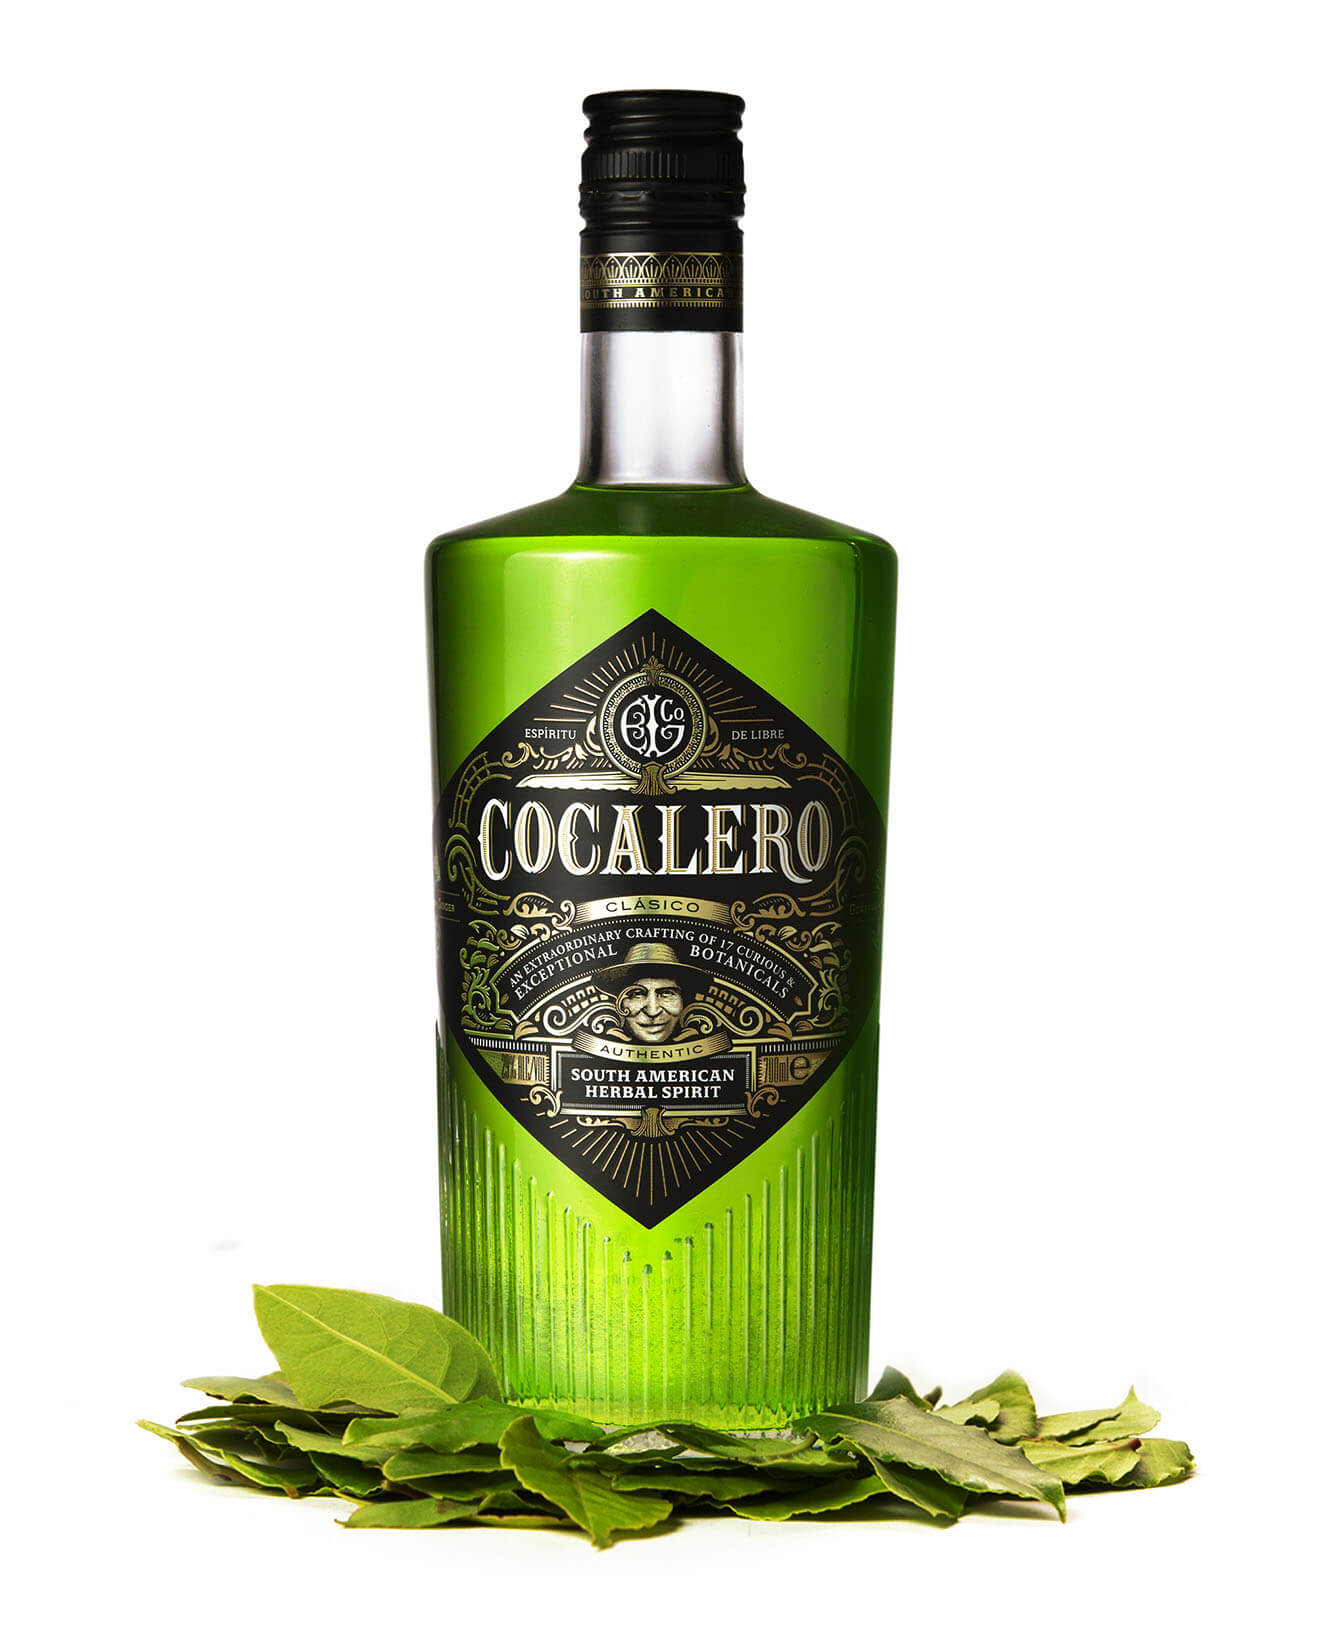 Cocalero bottle, leaves garnish